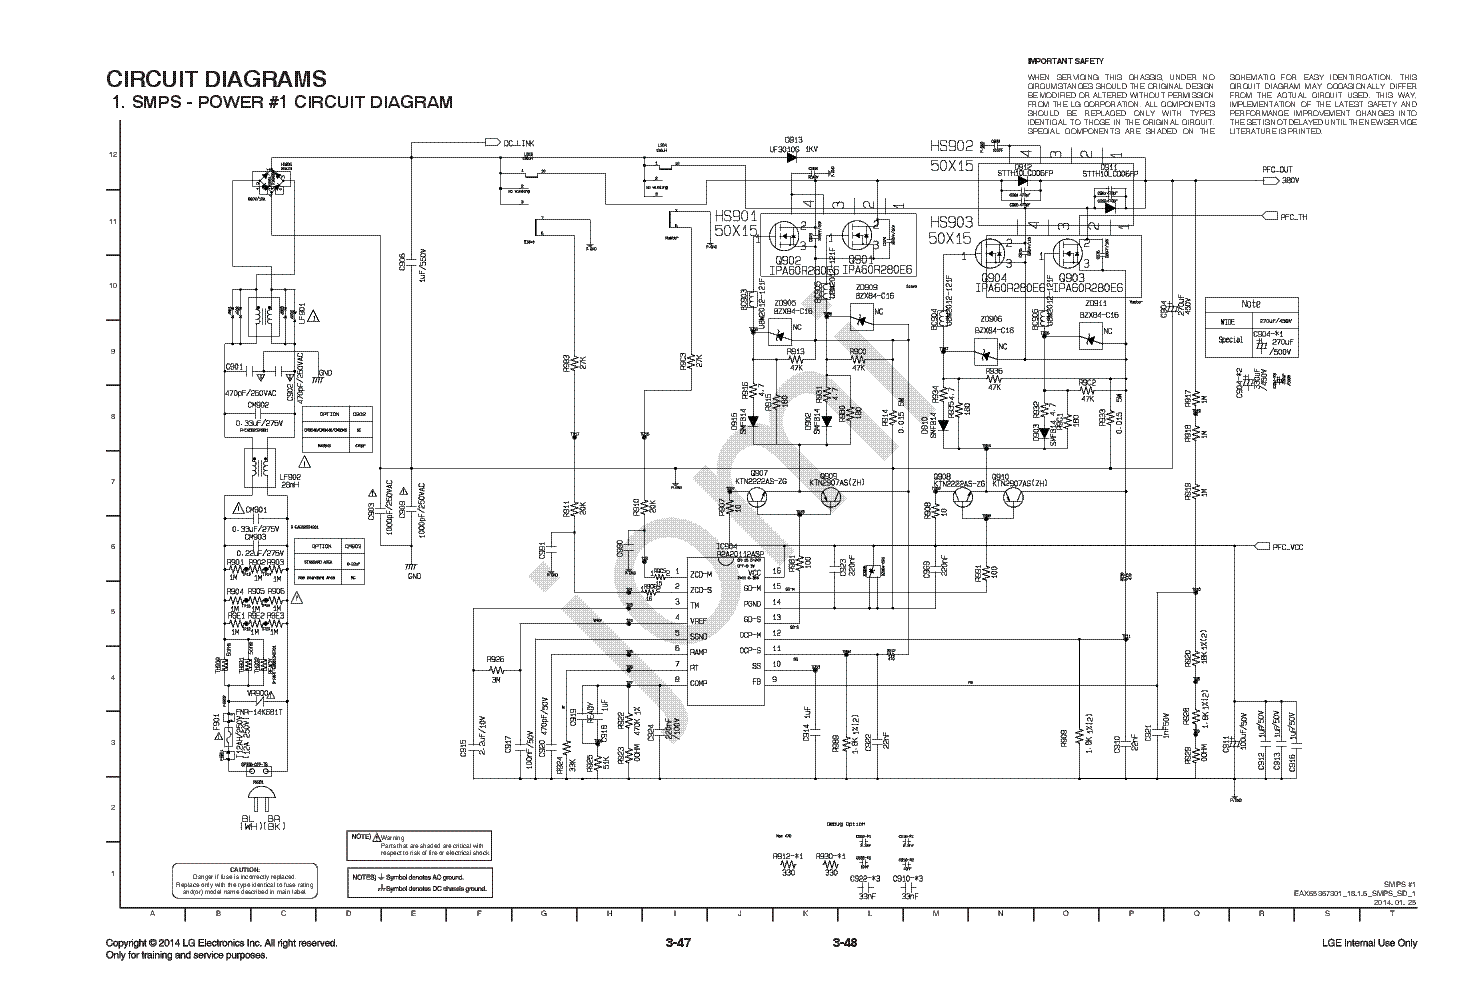 lg eax65367301 cm8340 psu sch service manual download  schematics  eeprom  repair info for